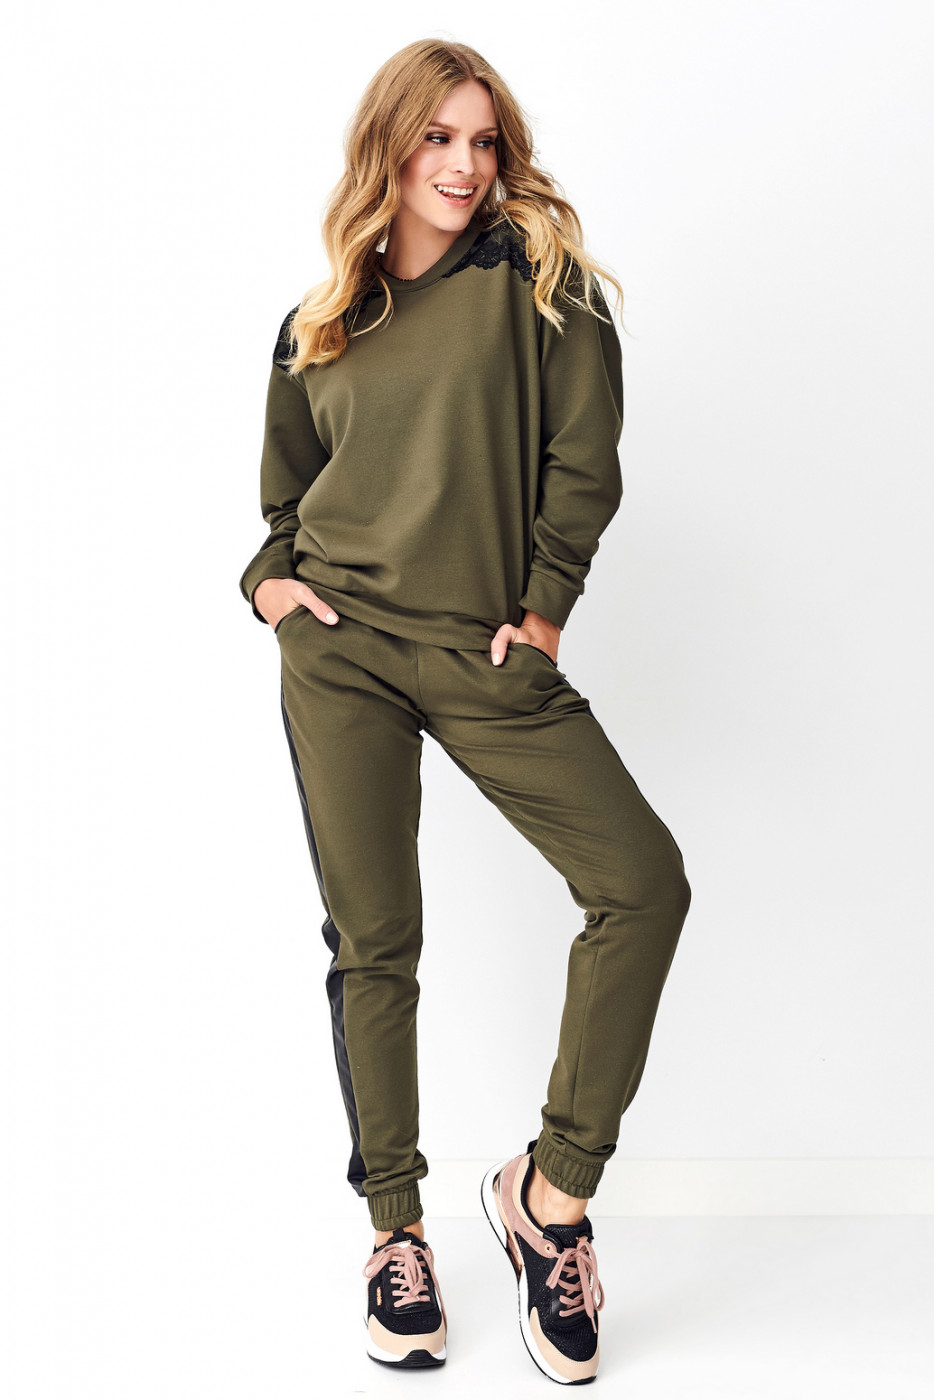 Numinou Woman's Set Nu_Nu249 Khaki